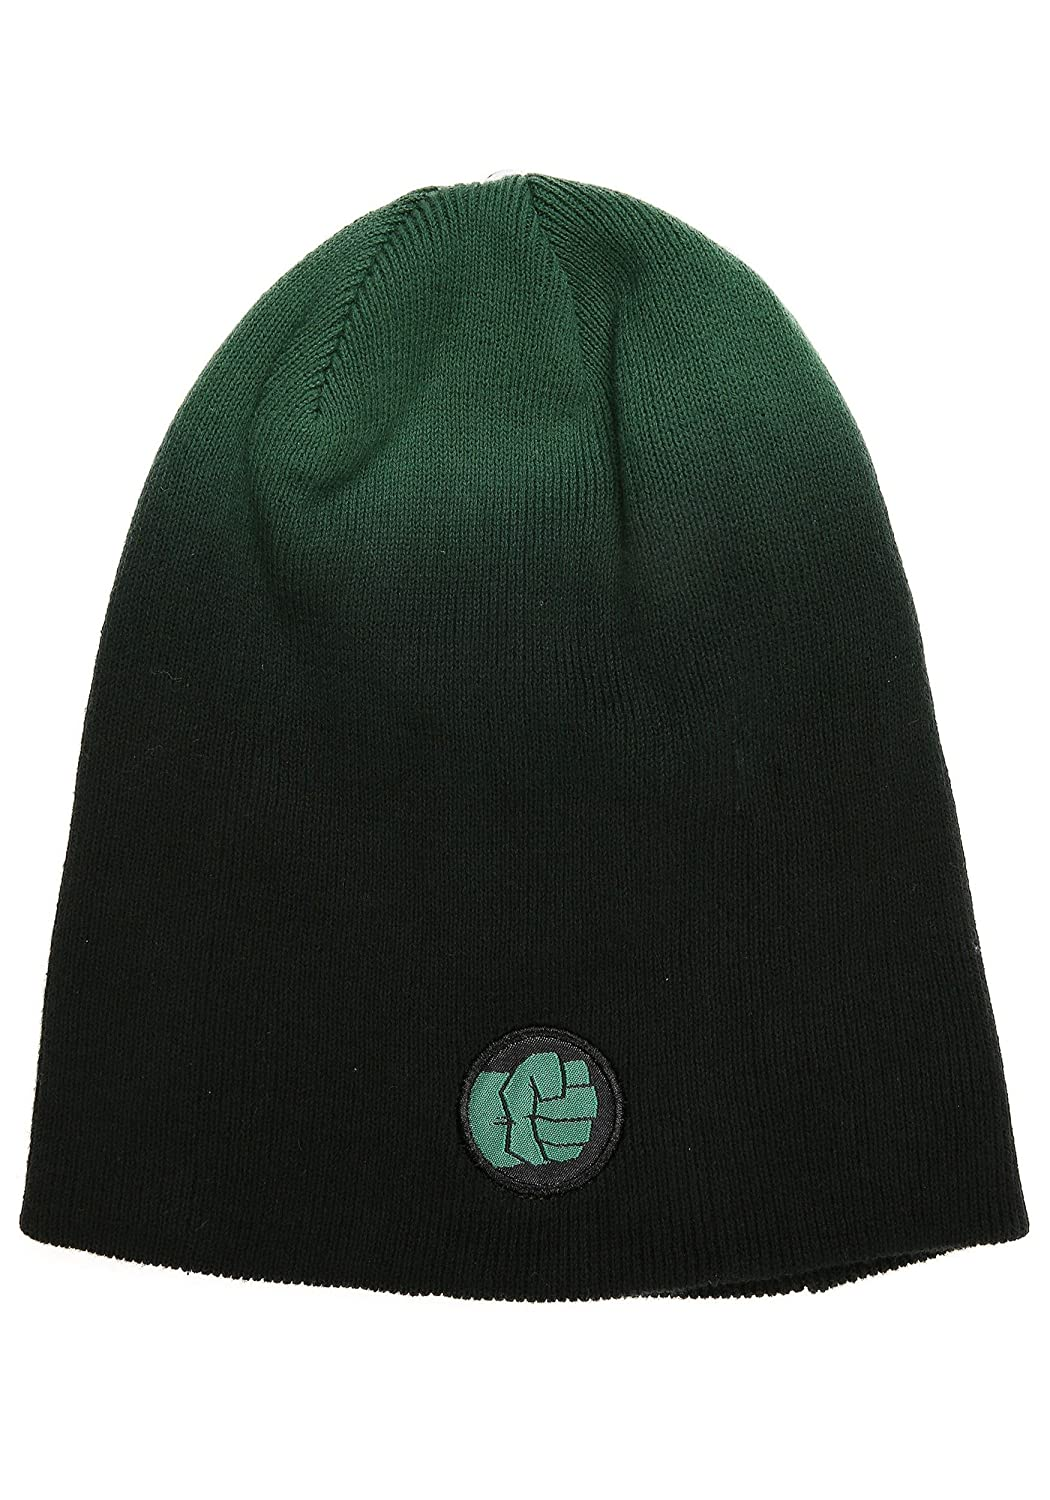 98540b26f01 Amazon.com  FunComInc Marvel Hulk Dip Dyed Slouch Knit Men s Winter Hat -  ST  Sports   Outdoors